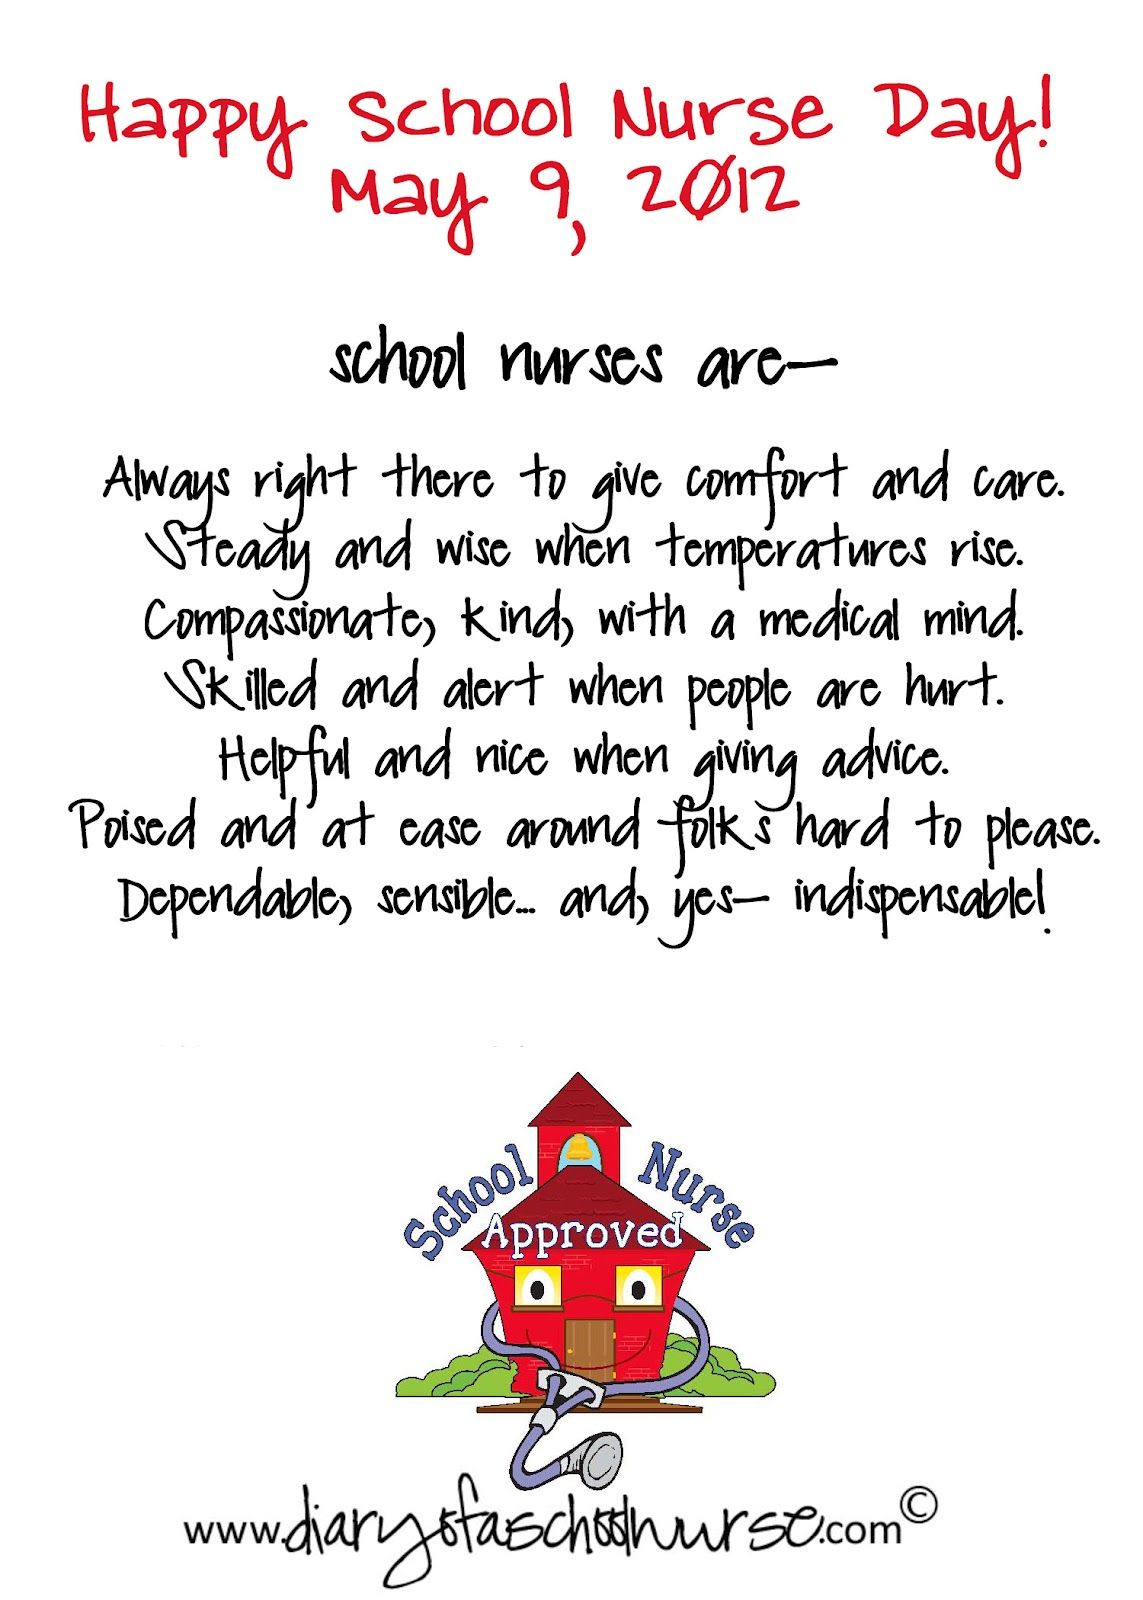 diary of a school nurse blog.school nurse and school